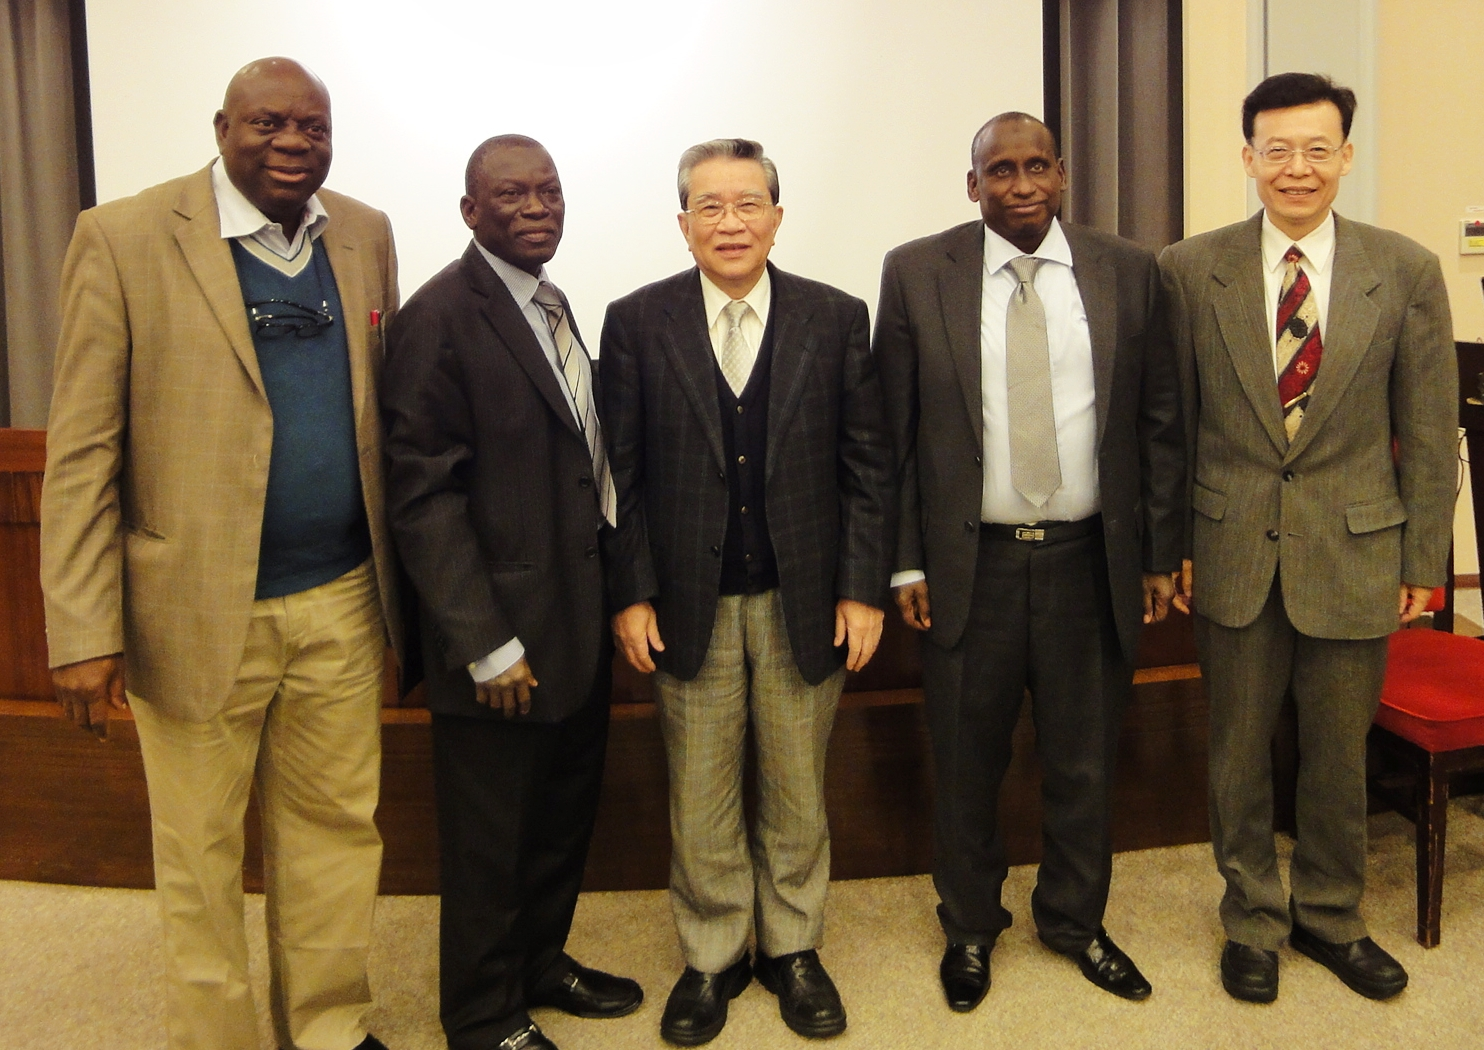 Nigerian delegation visits to discuss HR issues